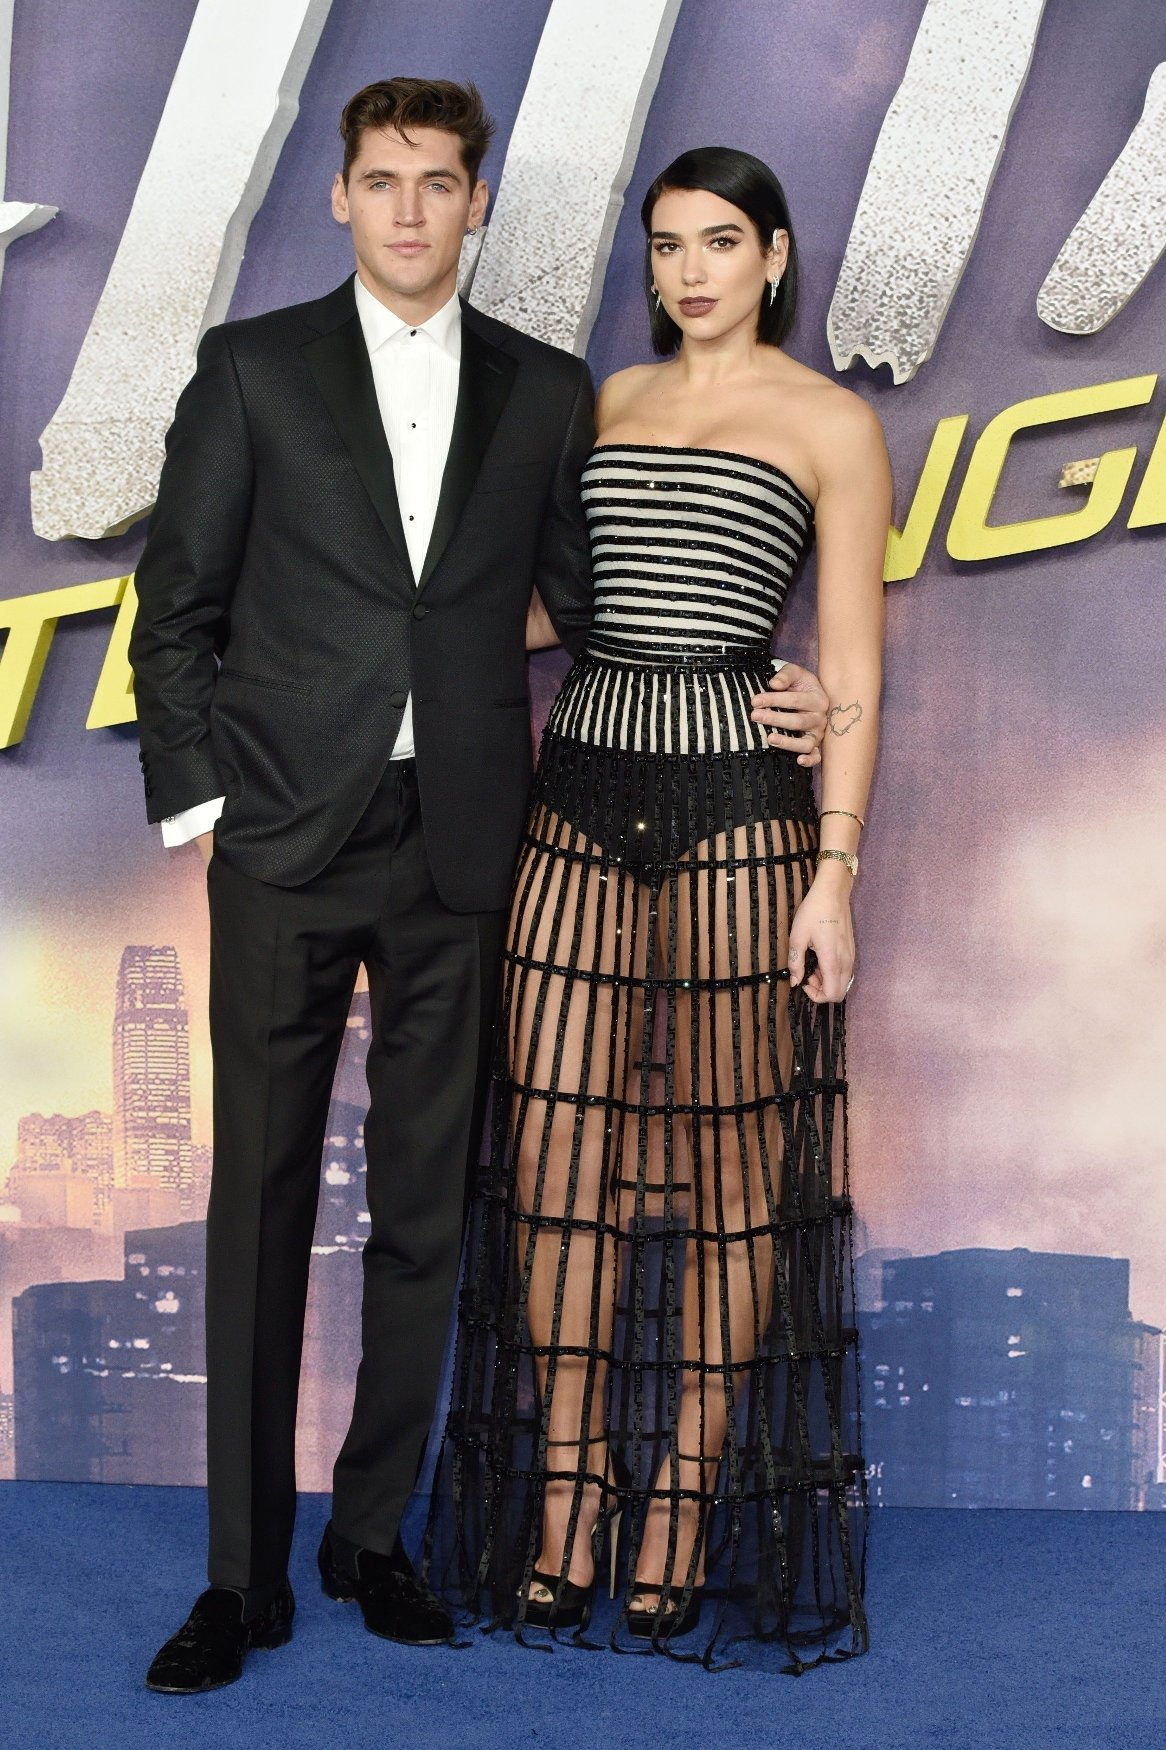 BGUK_1473751 - London, UNITED KINGDOM  - Dua Lipa and Isaac Carew attends the Alita: Battle Angel World Premiere at Odeon Leicester Square. London.  Pictured: Dua Lipa, Isaac Carew  BACKGRID UK 31 JANUARY 2019, Image: 411508523, License: Rights-managed, Restrictions: , Model Release: no, Credit line: Profimedia, Backgrid UK